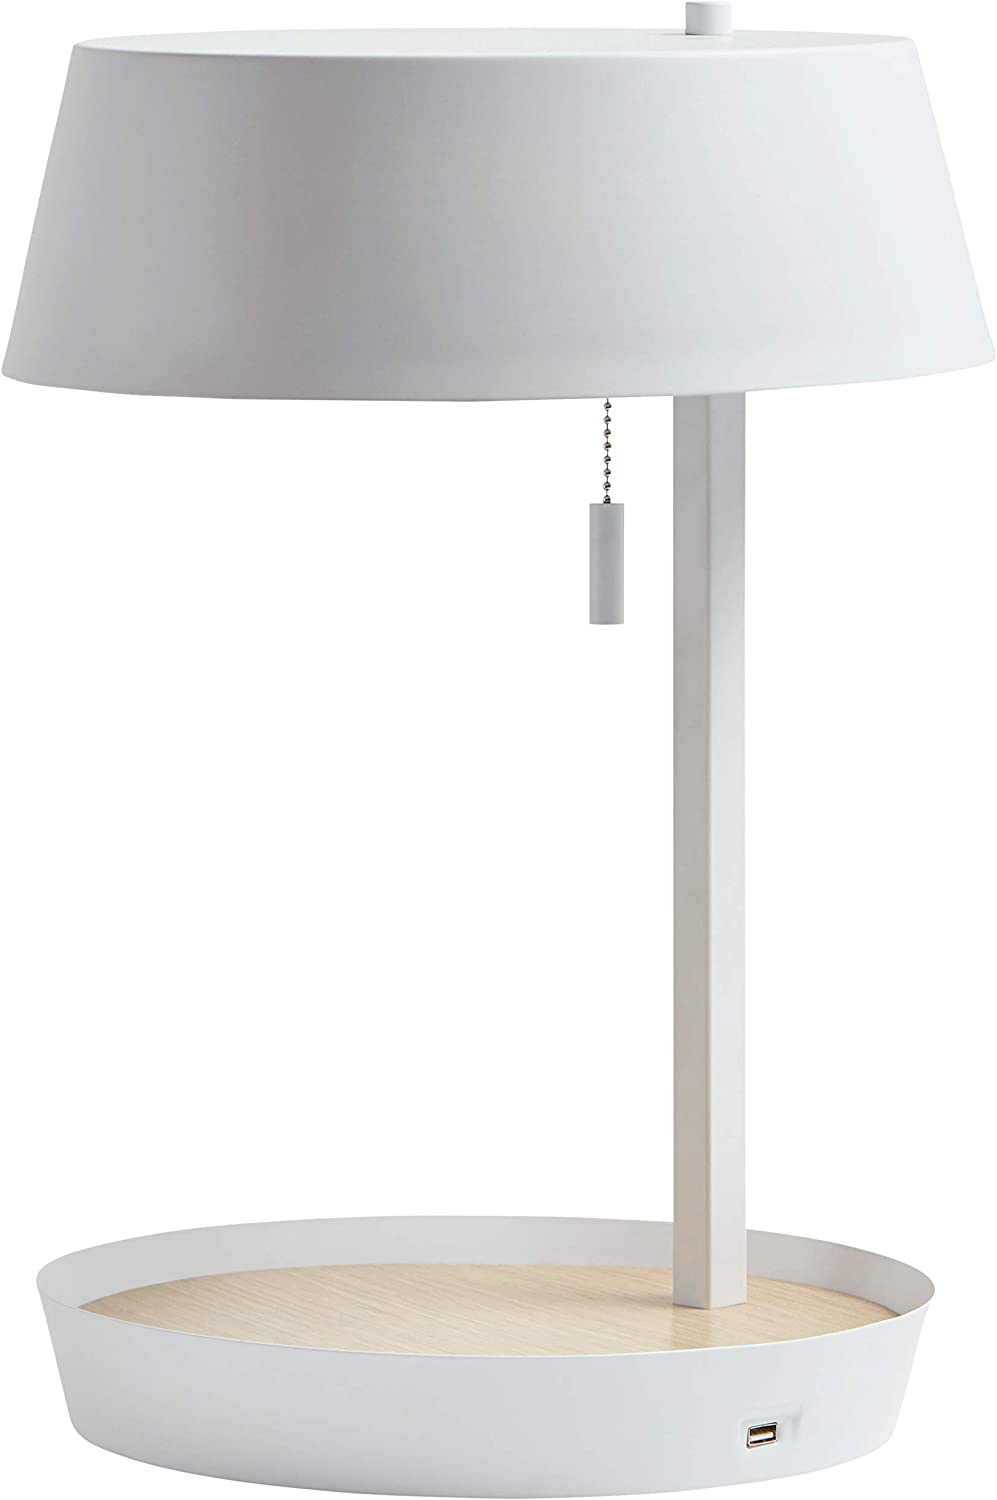 Rivet Modern Table Lamp with USB and Bulb, 18 H, White